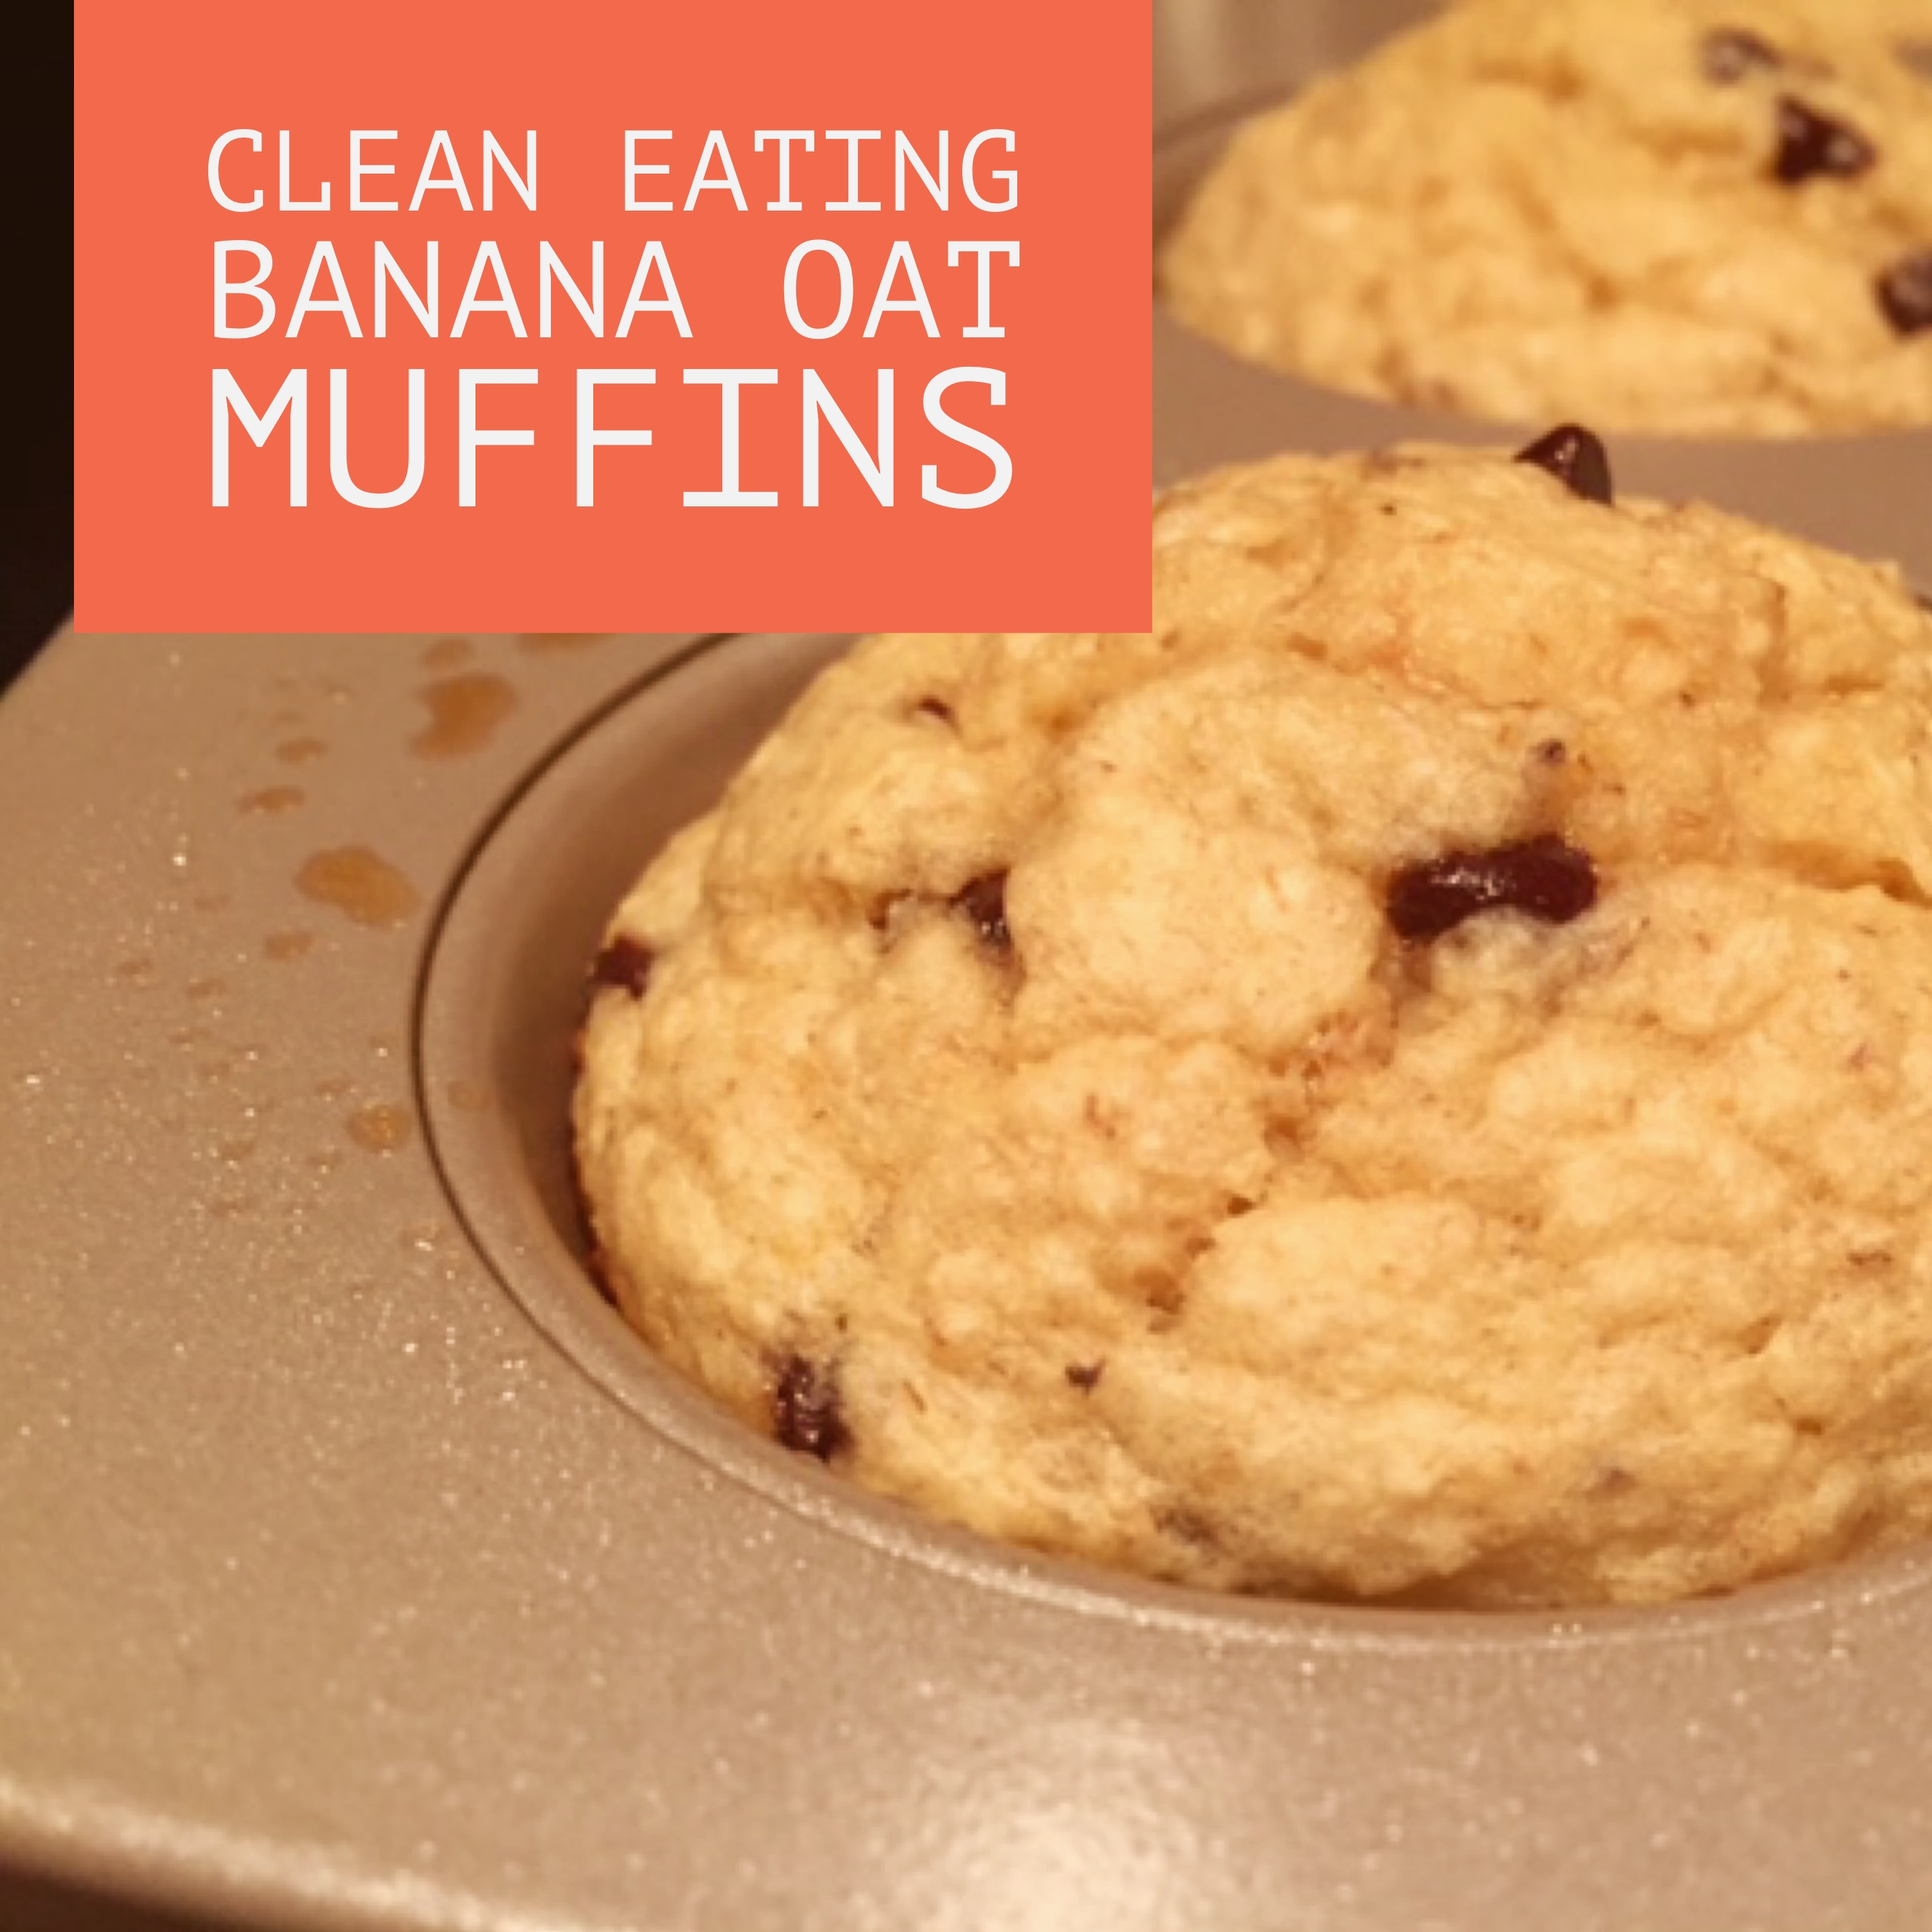 Clean Eating Banana Oat Muffins (gluten-free)